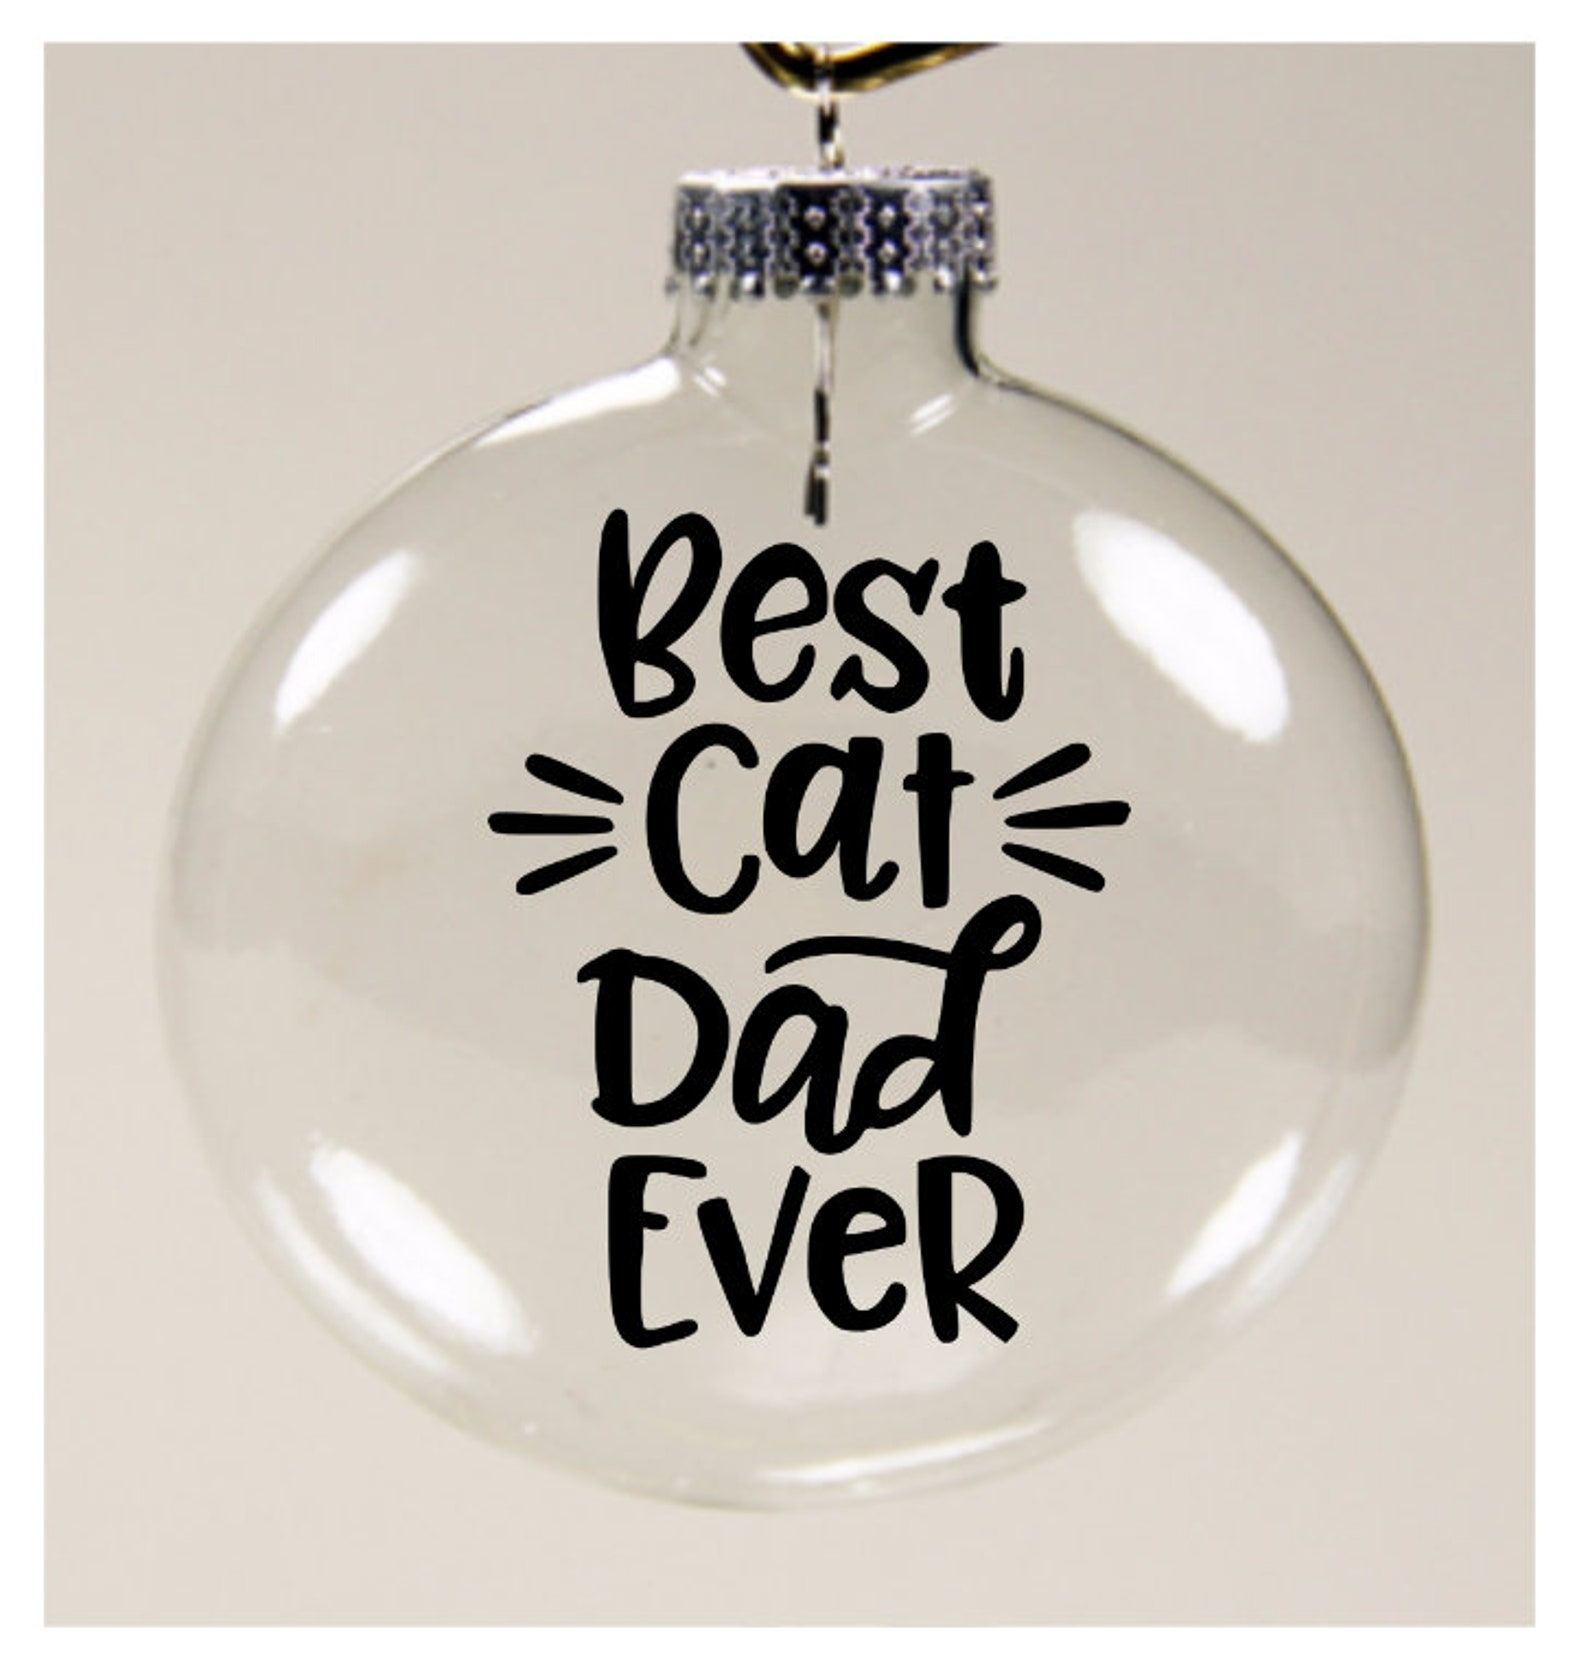 Best Cat Dad Ever Ornament